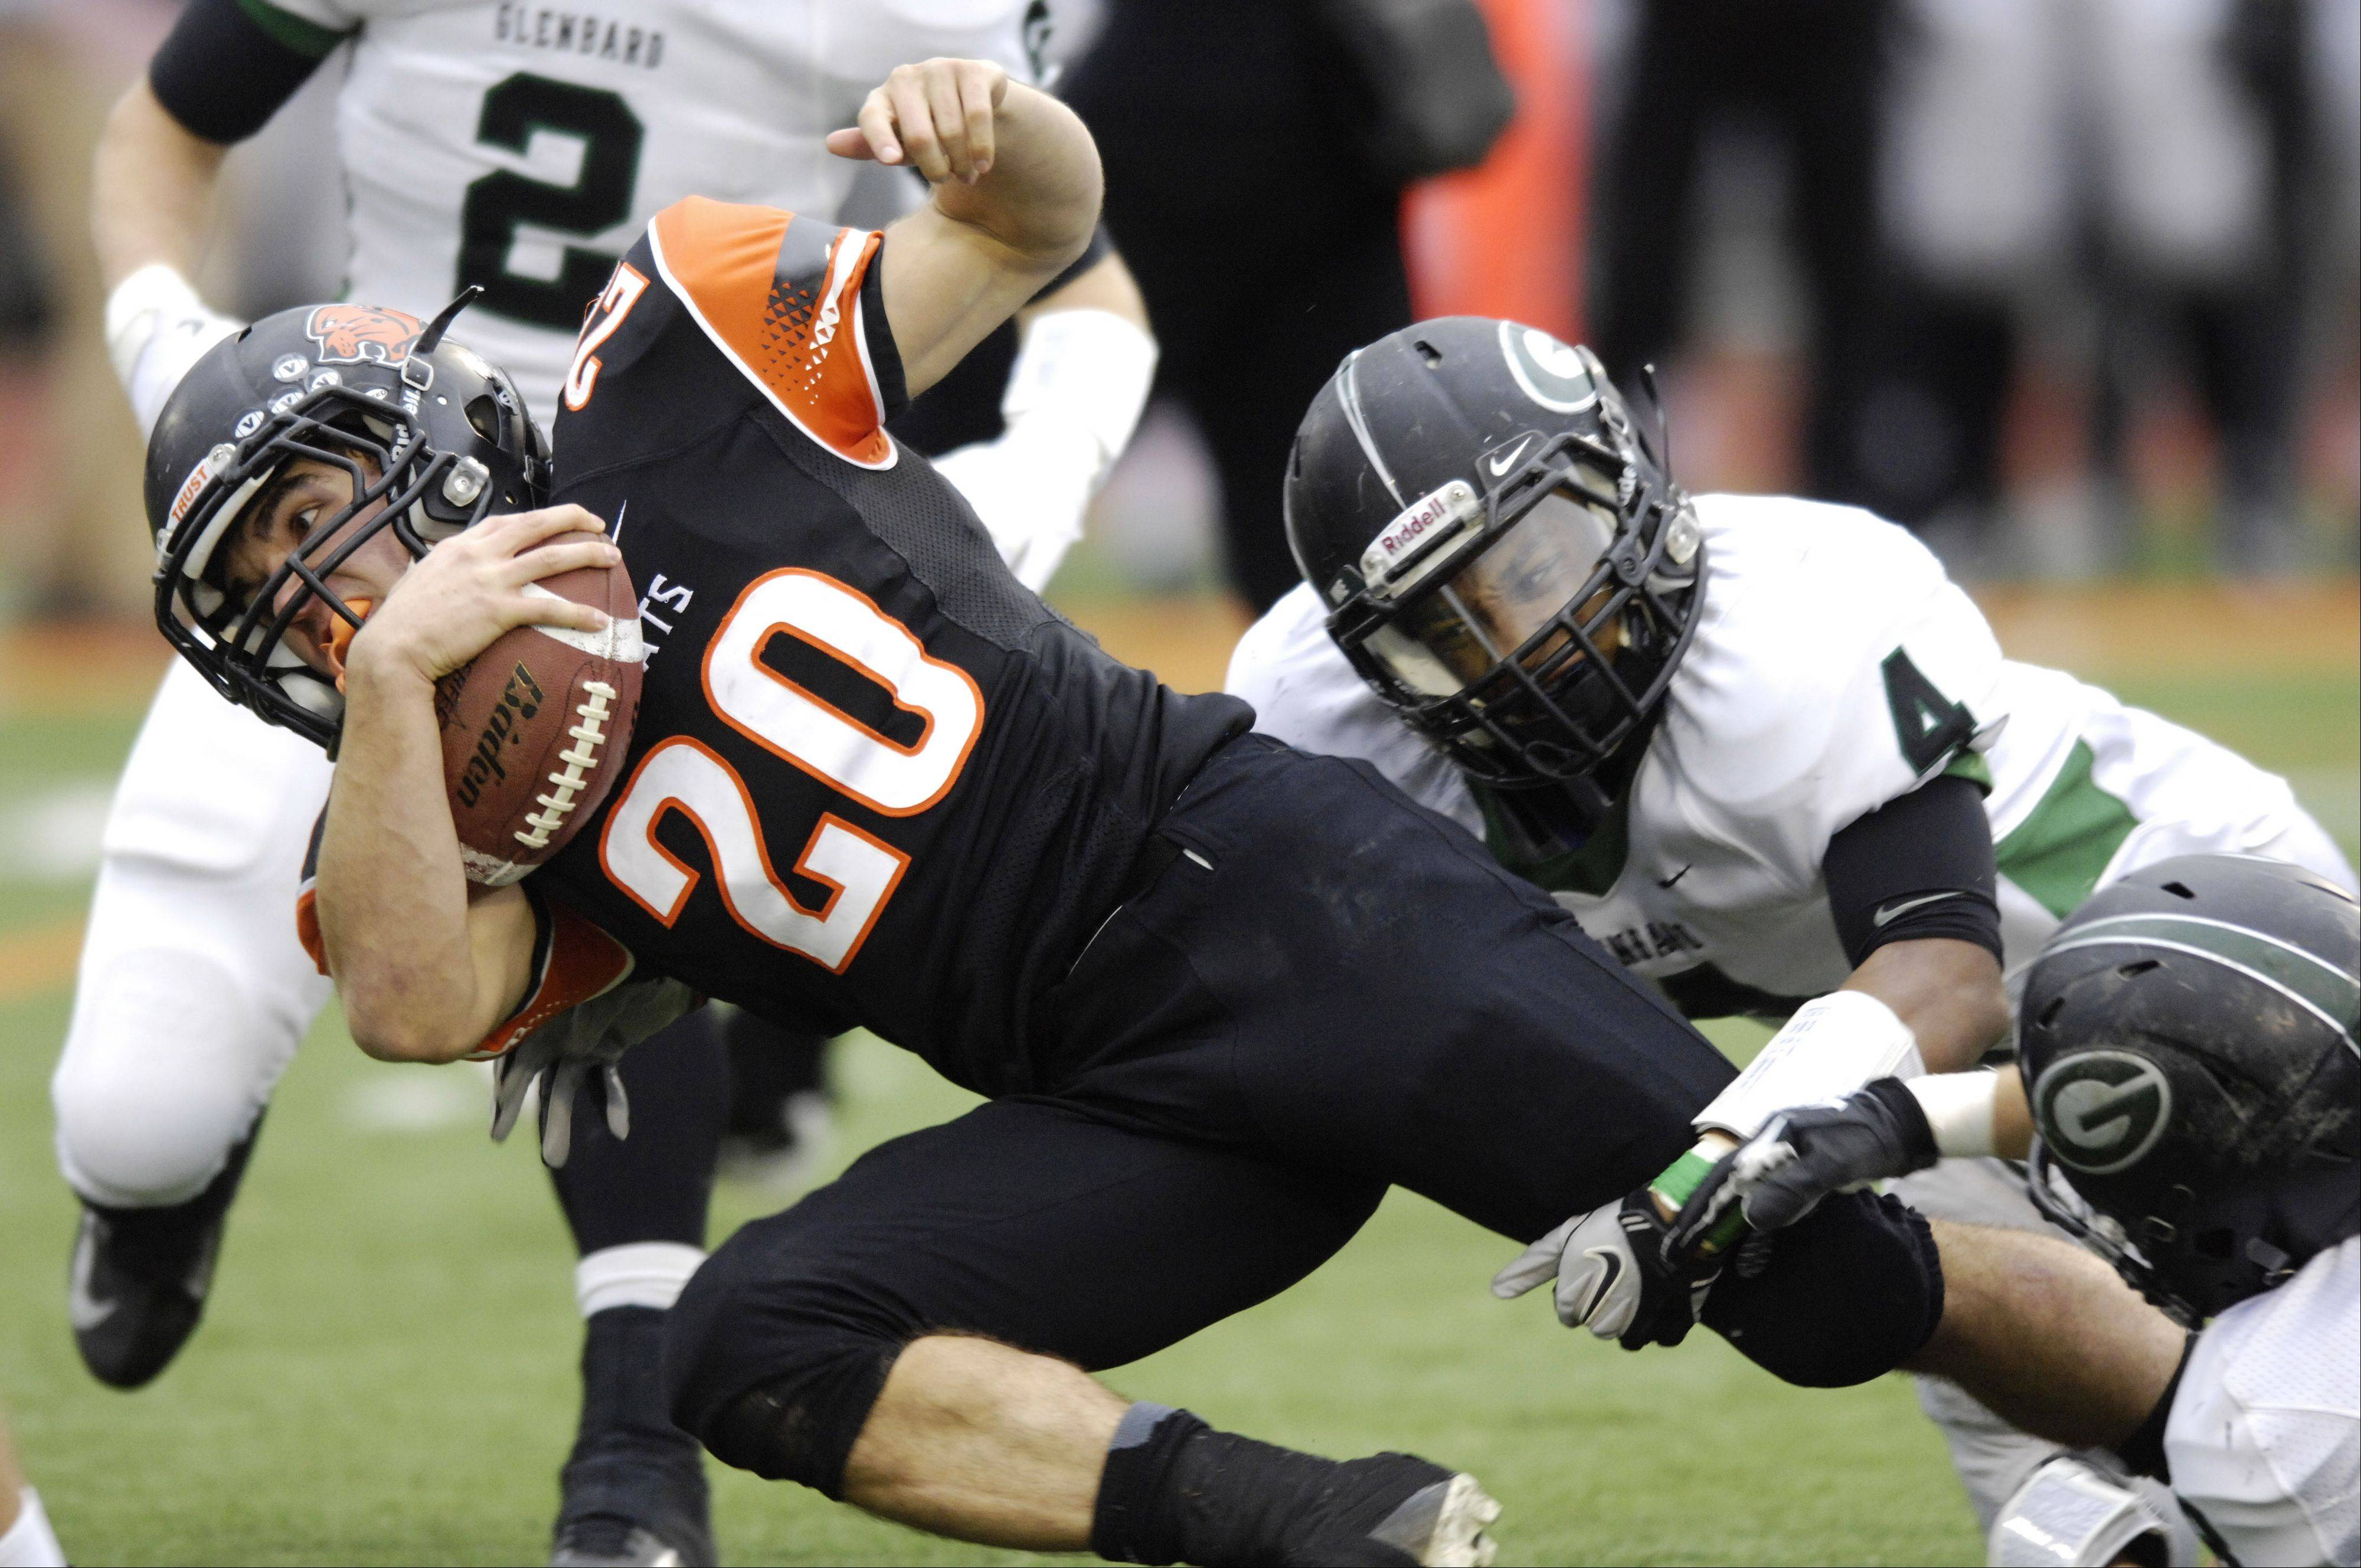 Libertyville running back Brian Swift gets tackled by Glenbard West's Keeshawn Matthews during Saturday's game.